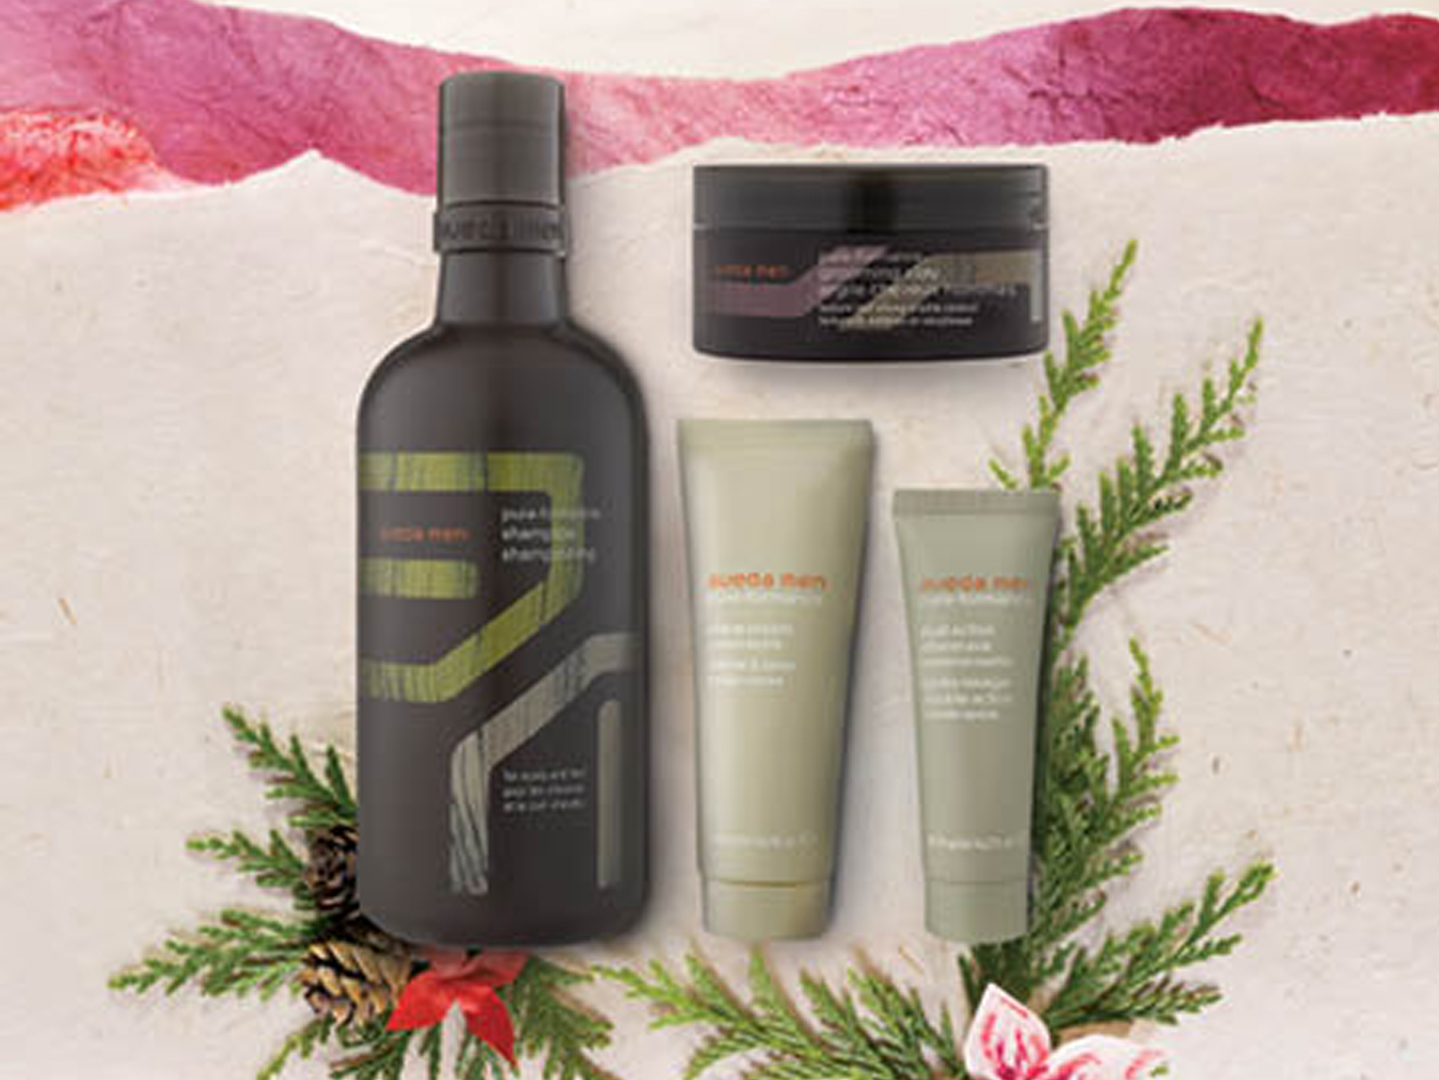 Civello Salons, South Granville Holiday Gift Guide 2017, Vancouver, British Columbia, Canada